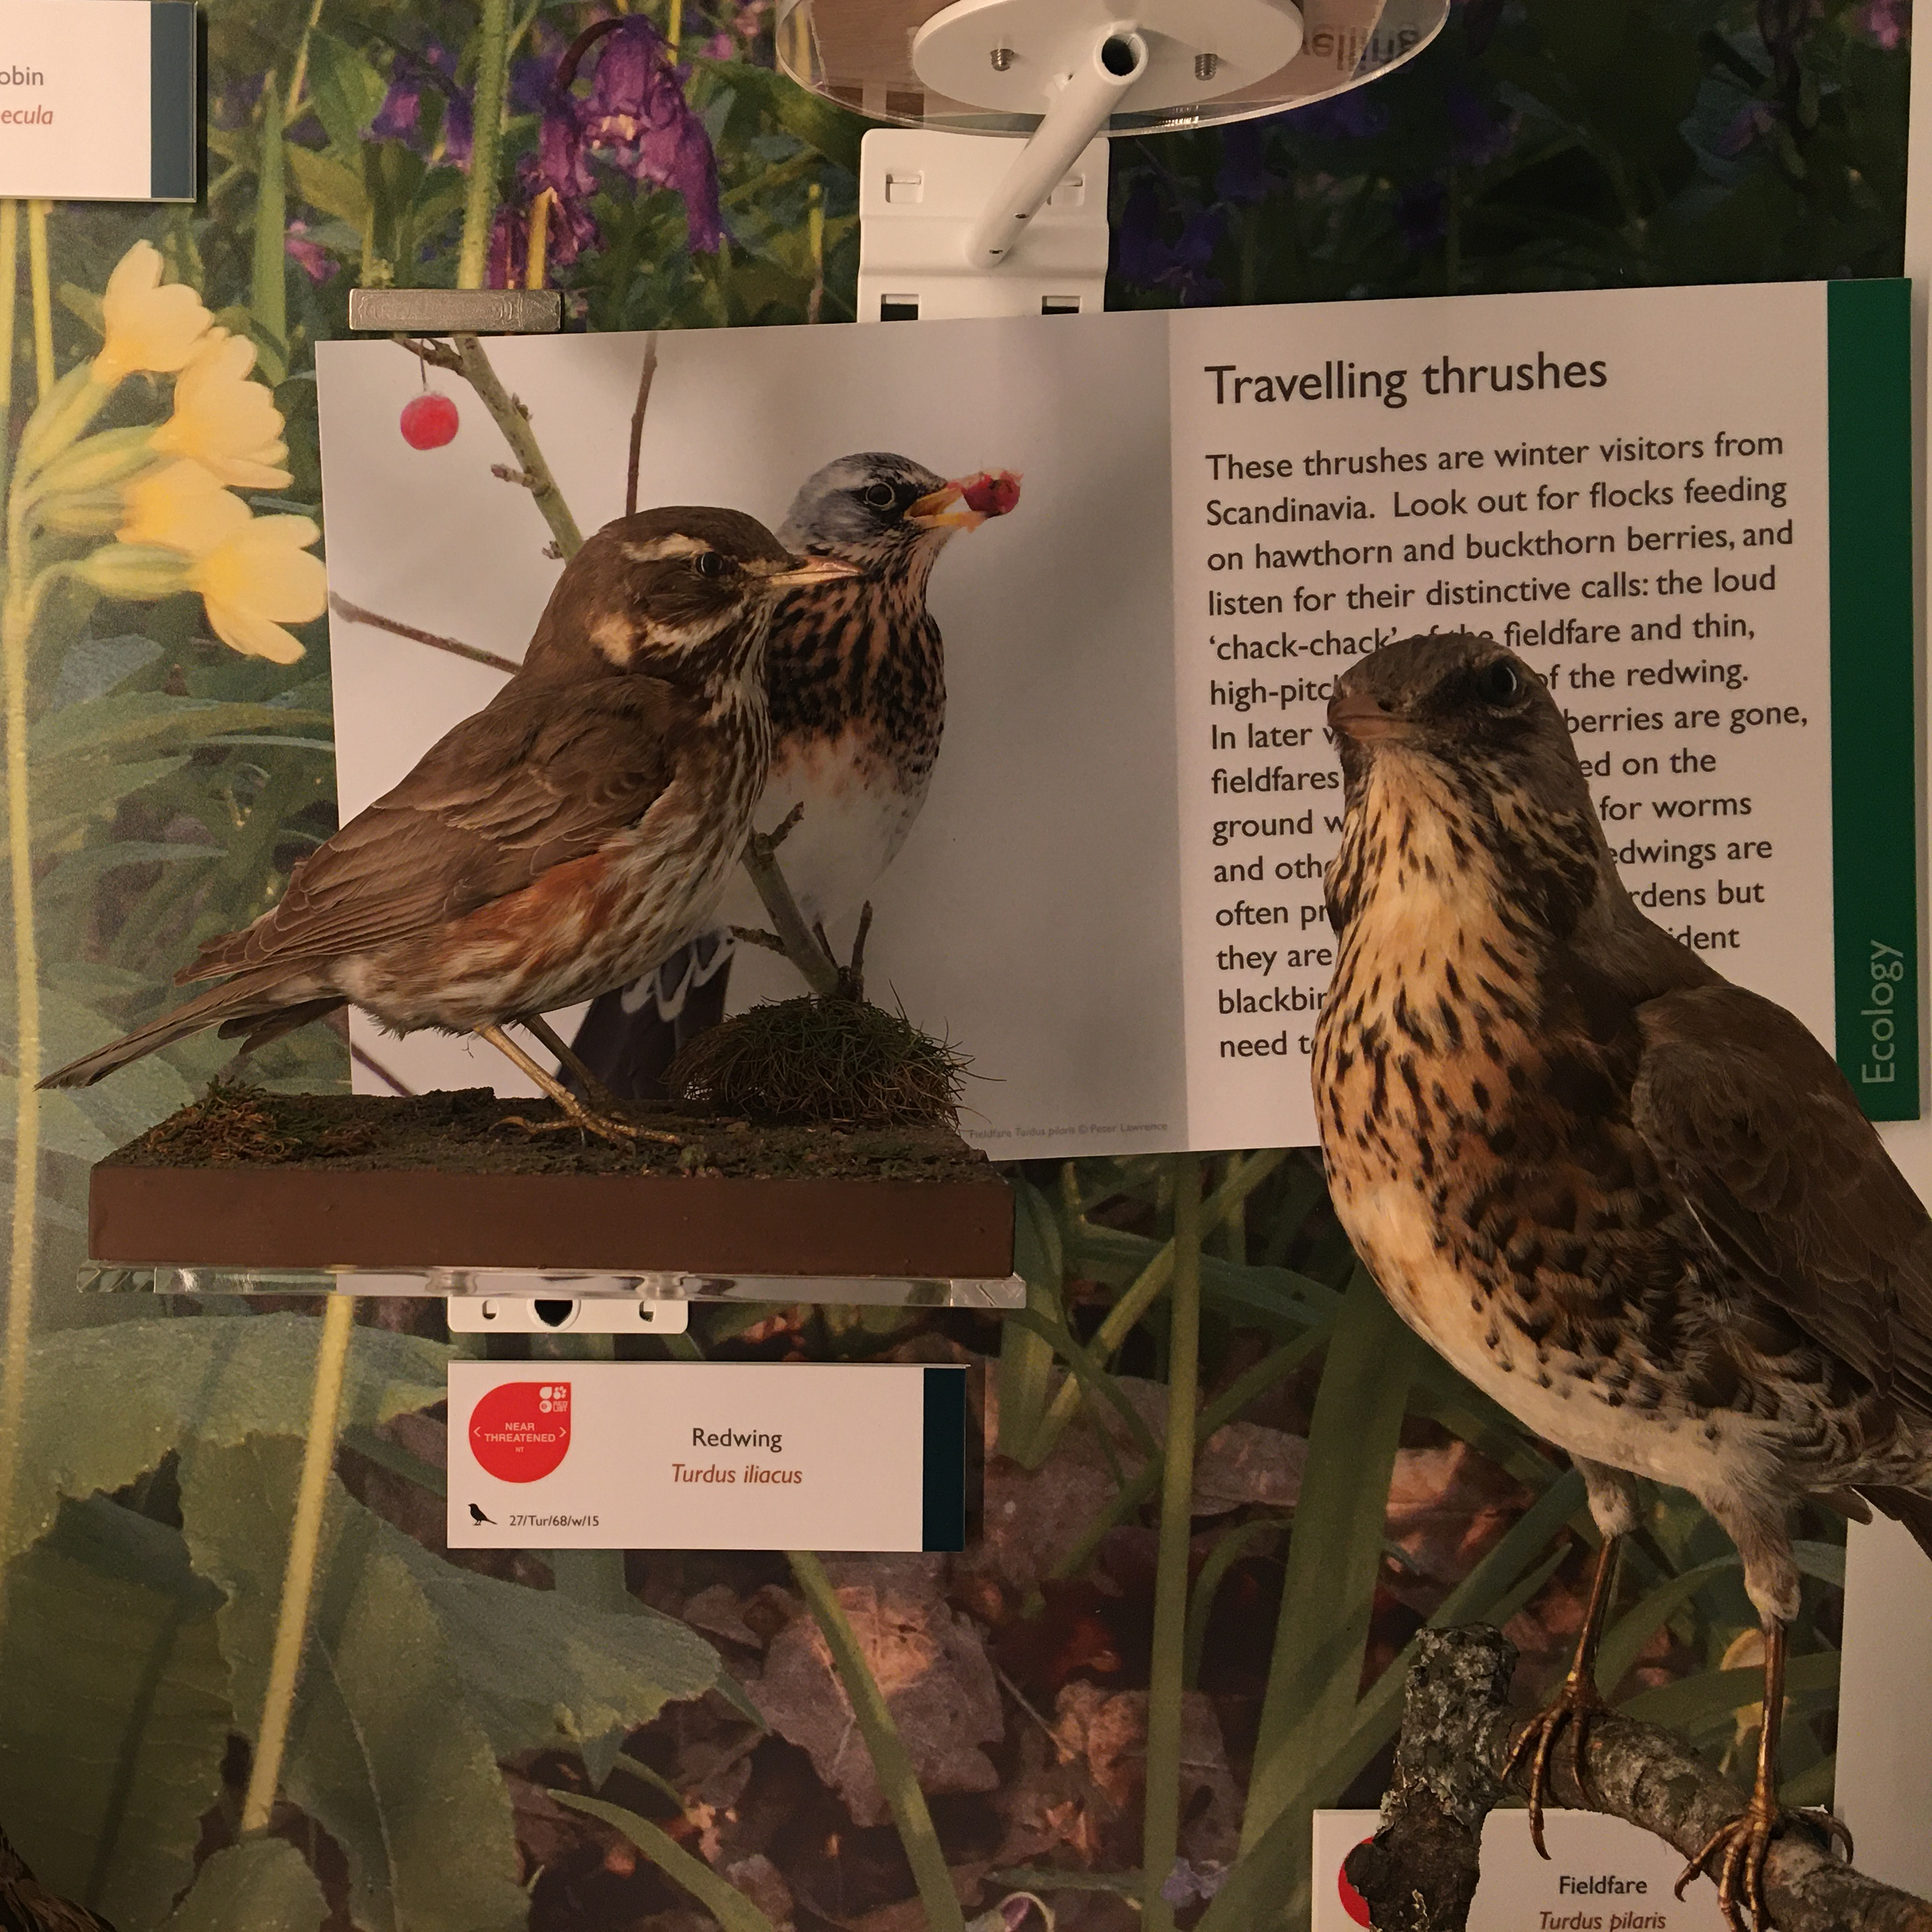 Redwing and Fieldfare specimens on display in the Museum of Zoology